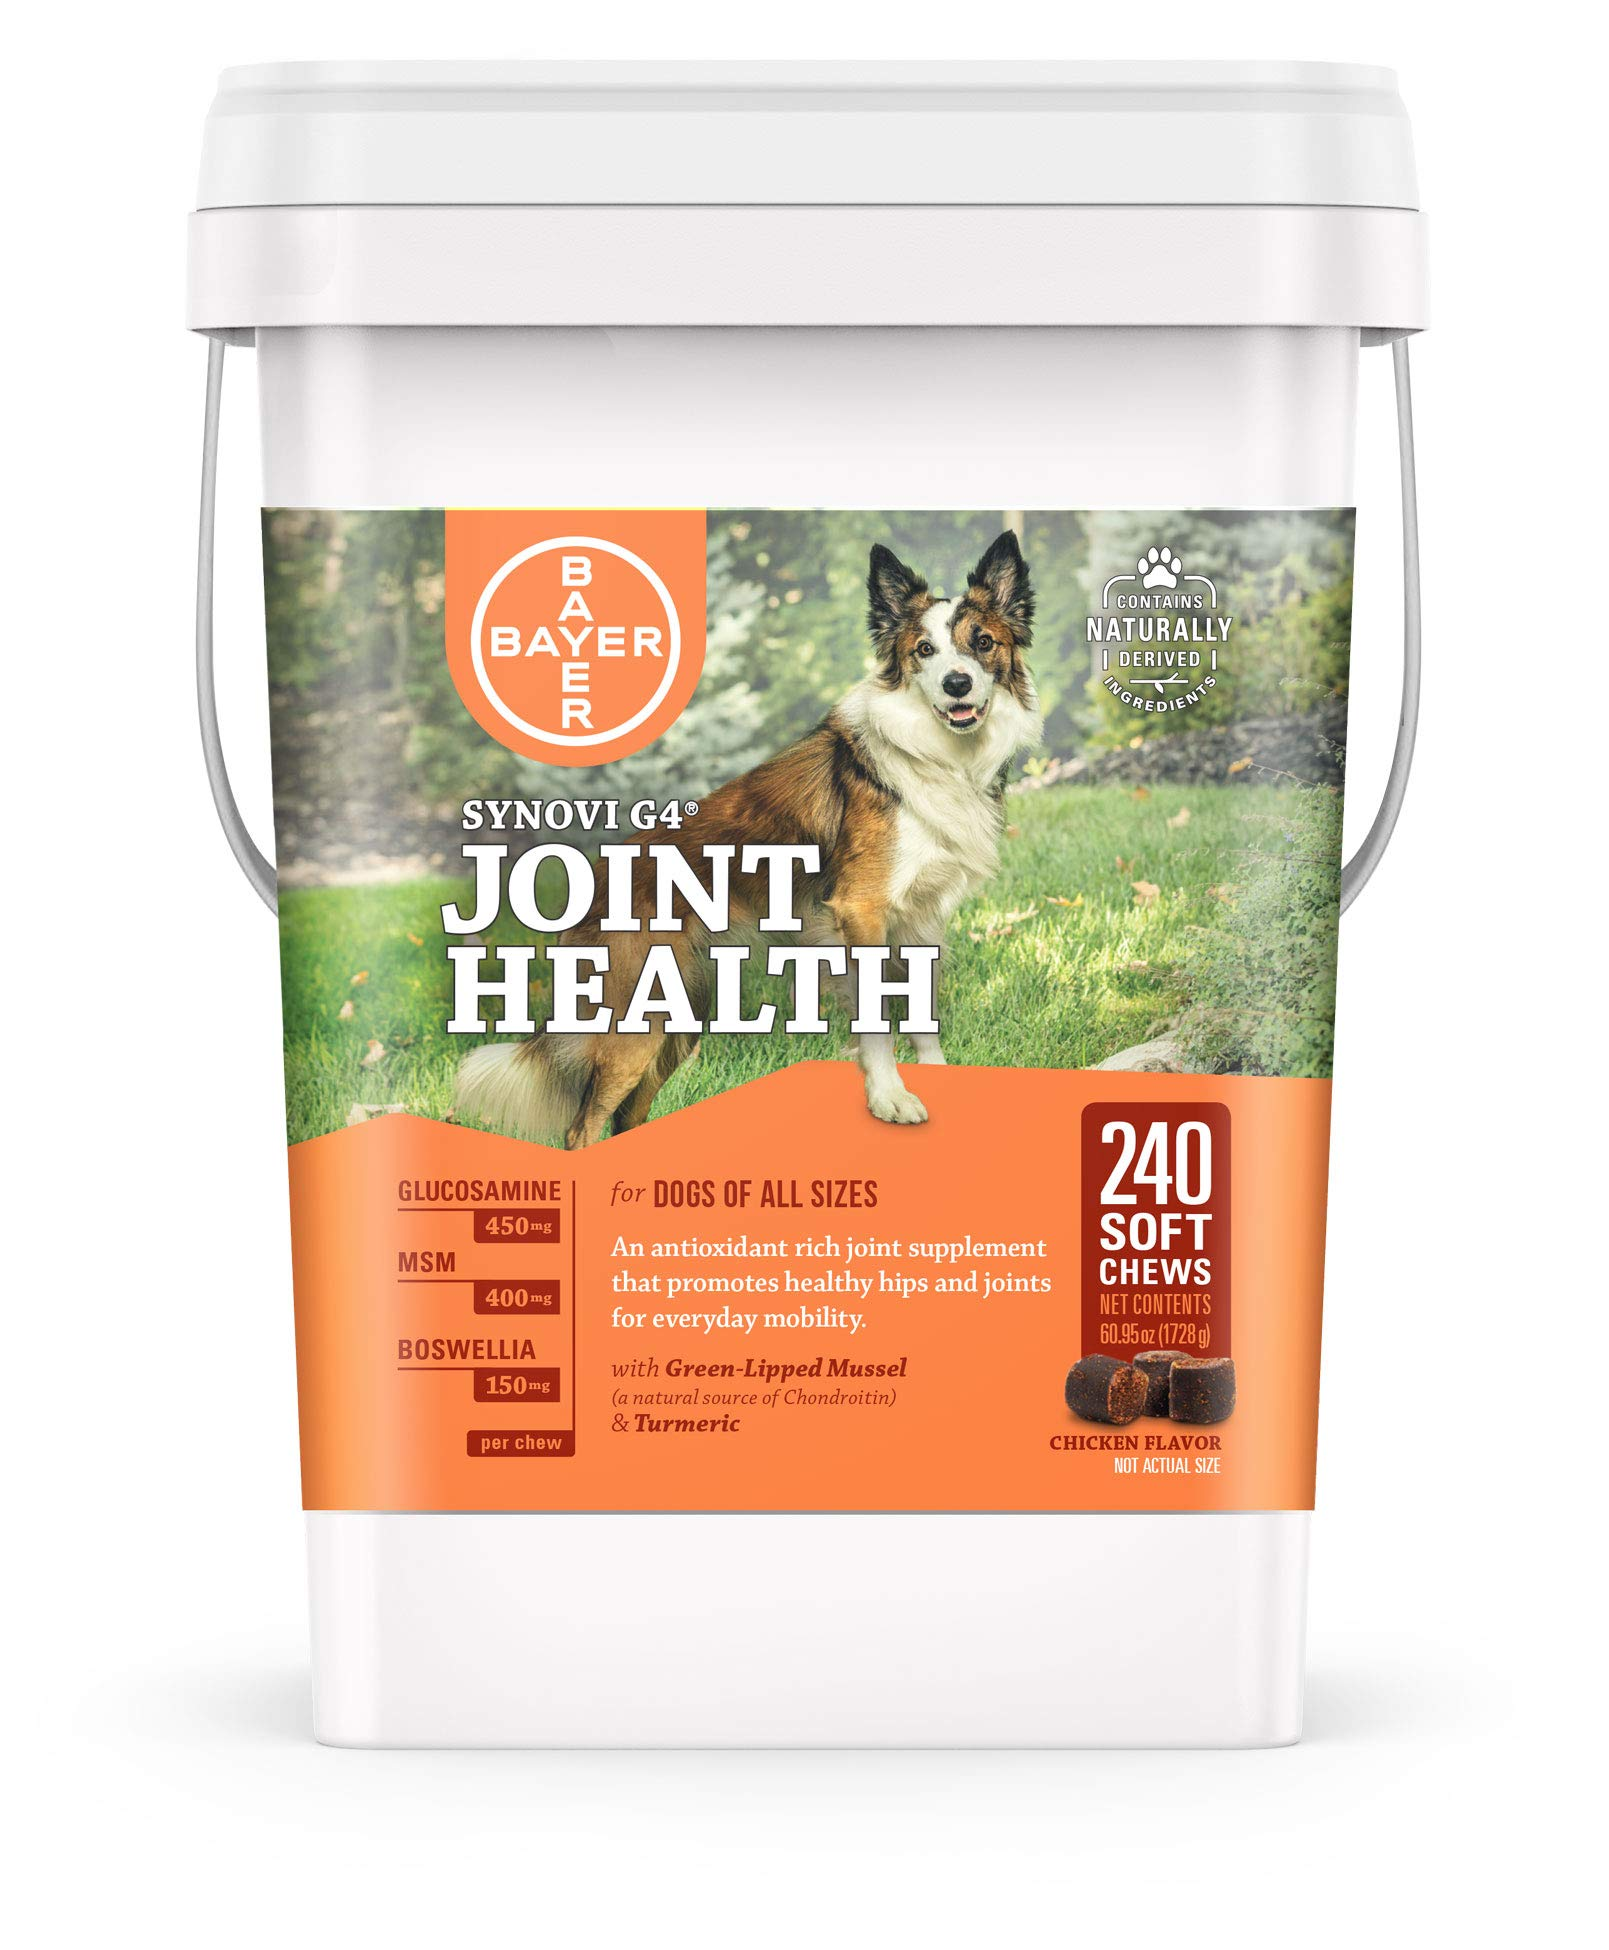 Bayer Synovi G4 Soft Chews Glucosamine Joint Supplement for Dogs, 240 count